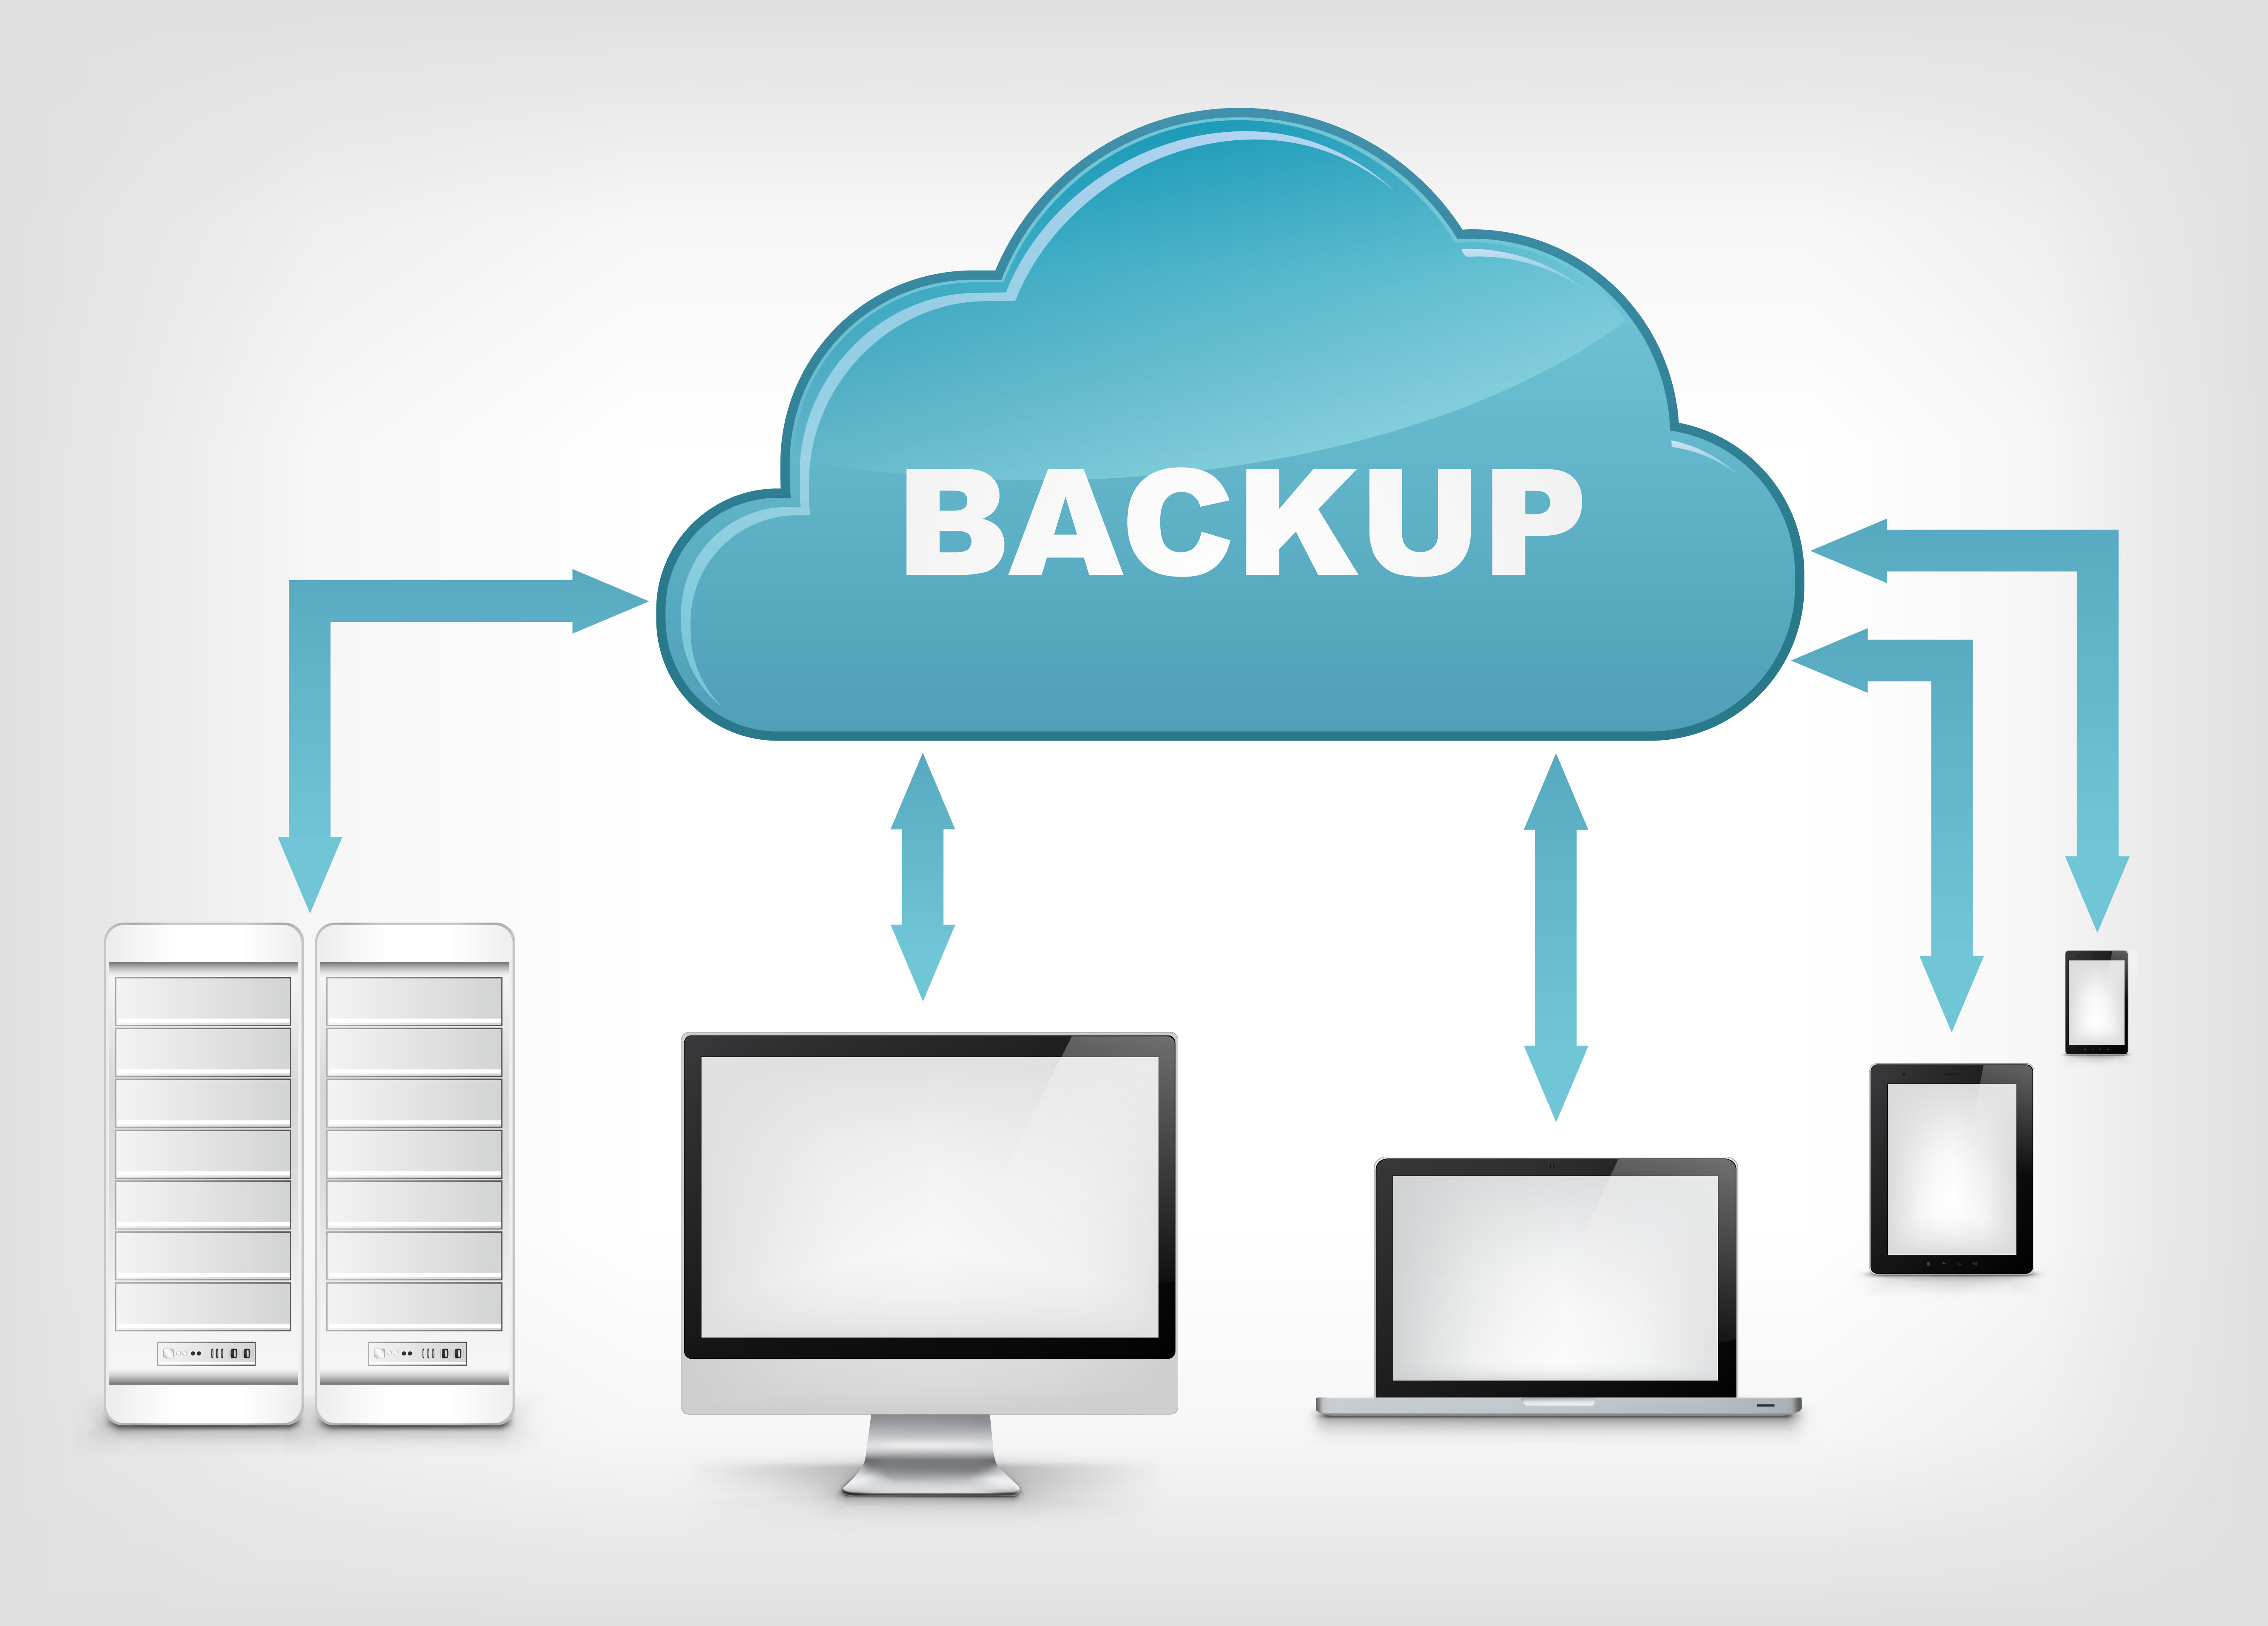 What's Your Web Application Back Up Plan?